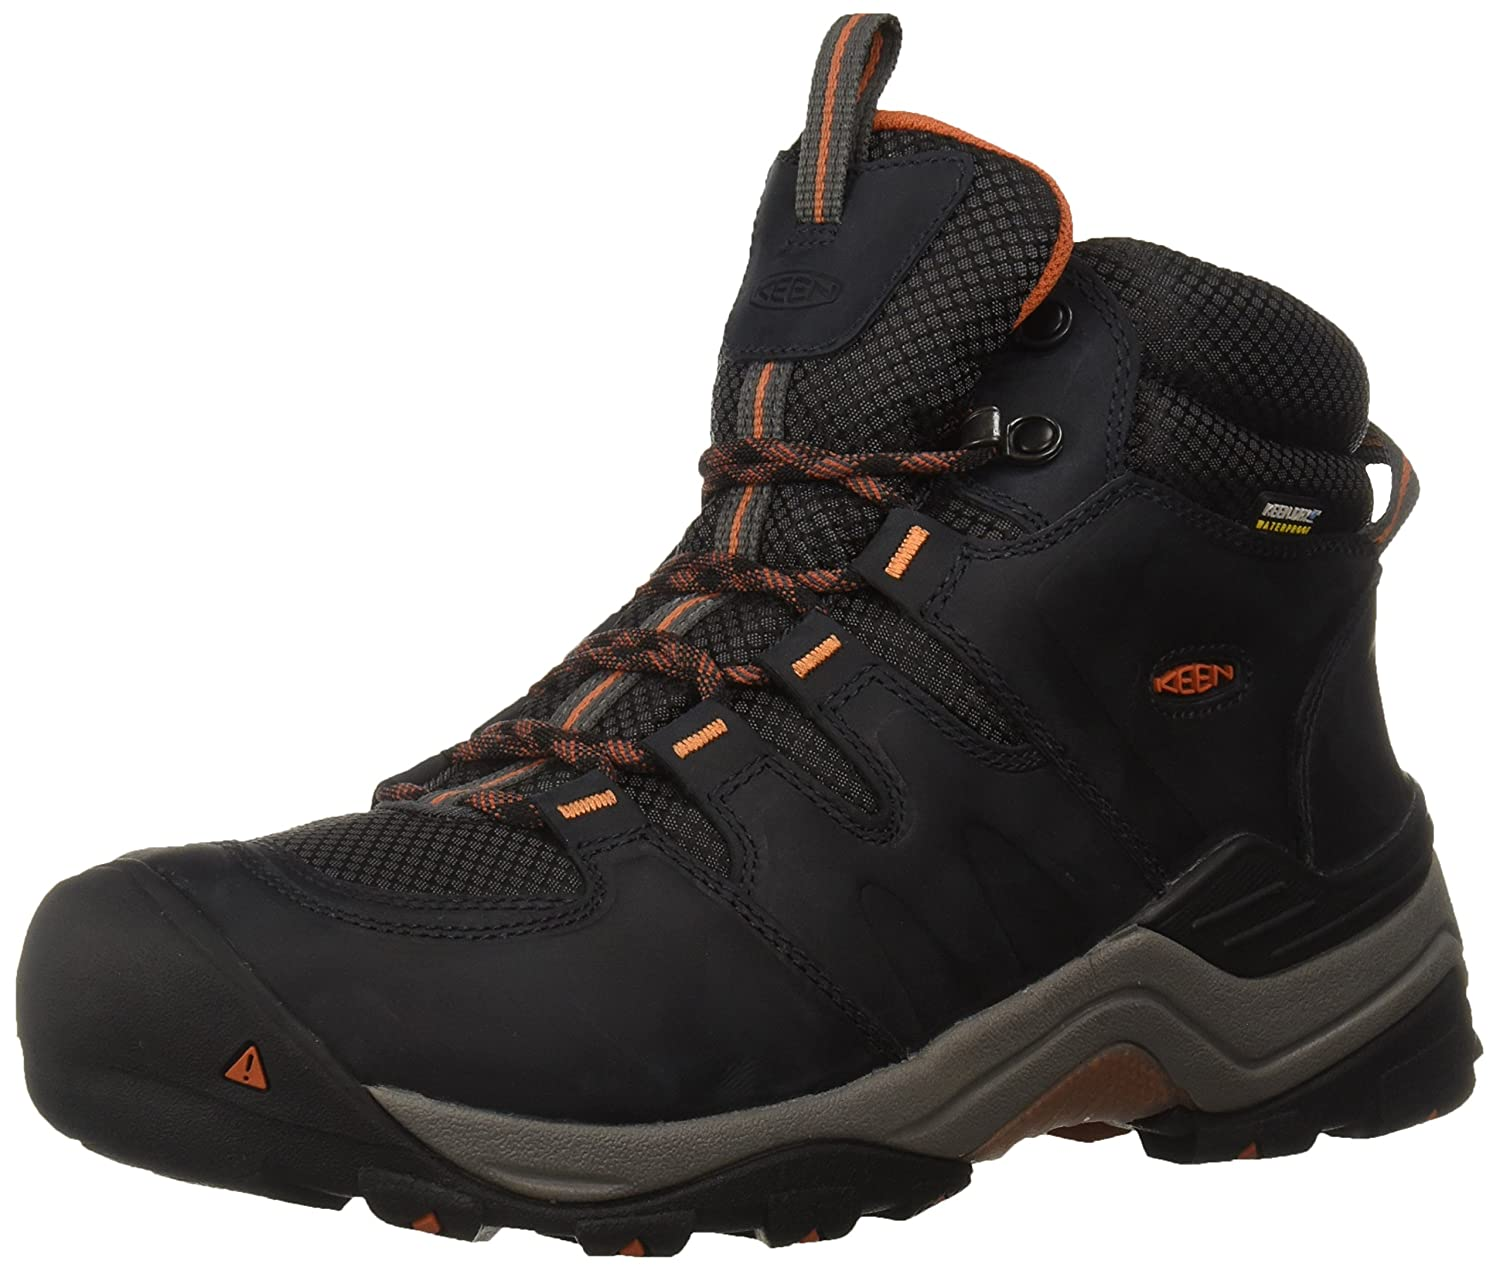 Keen メンズ 1015299 B019F7FRTM 11.5 D(M) US|India Ink/Burnt Ochre India Ink/Burnt Ochre 11.5 D(M) US